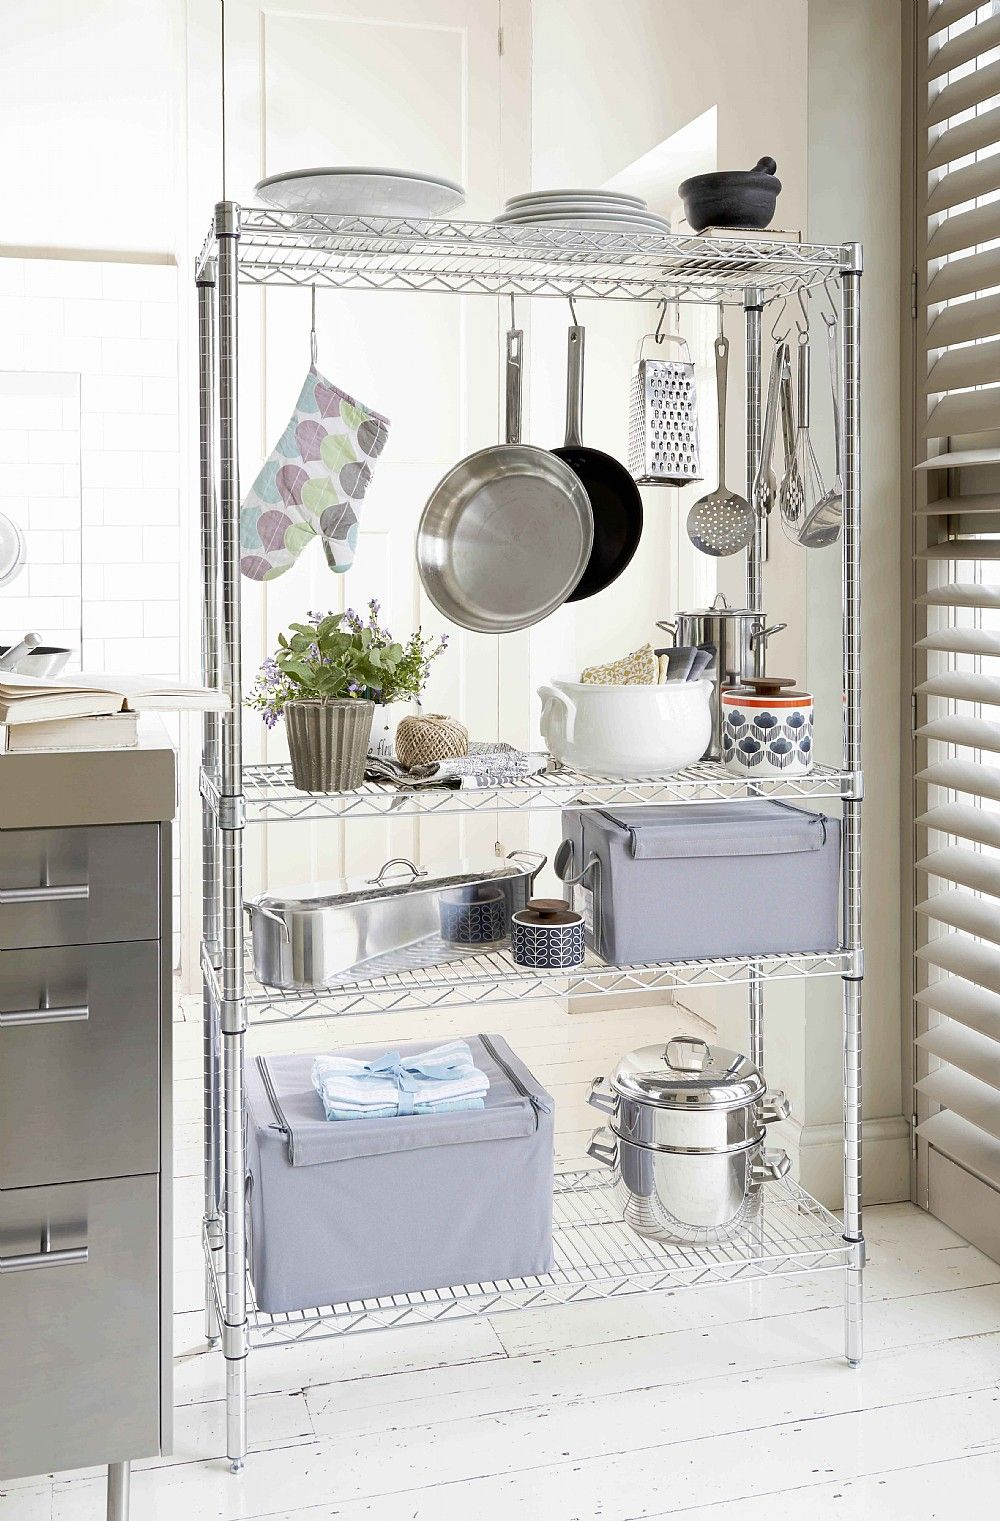 Chrome Kitchen Rack Accessorize With Hooks To Hang Pans And Utensils Such A